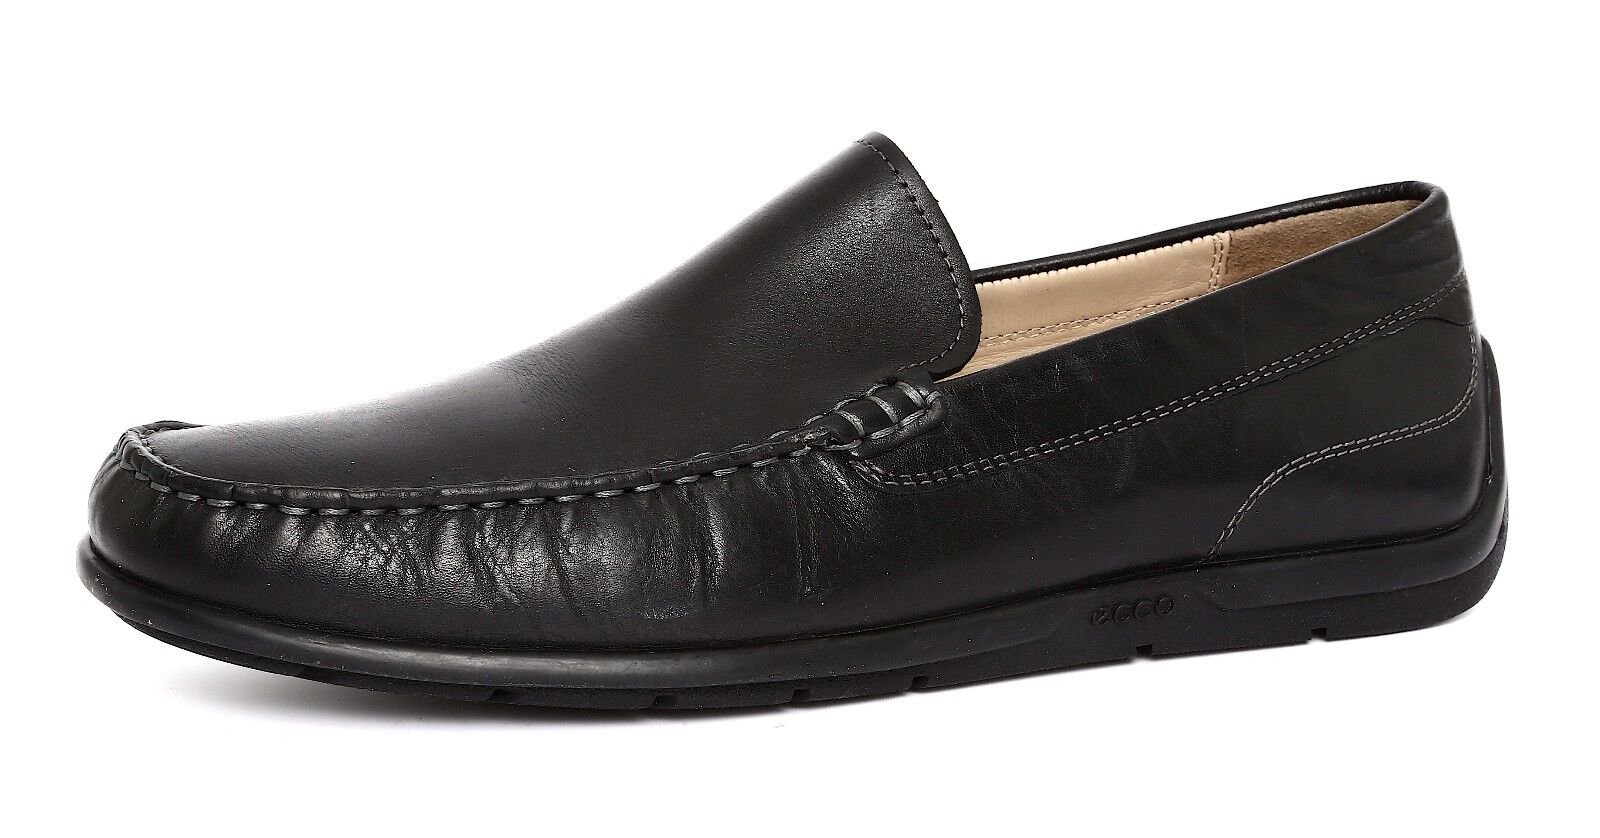 ECCO Men's Classic Slip Leather On Leather Slip Loafer Sz 43 e693c6